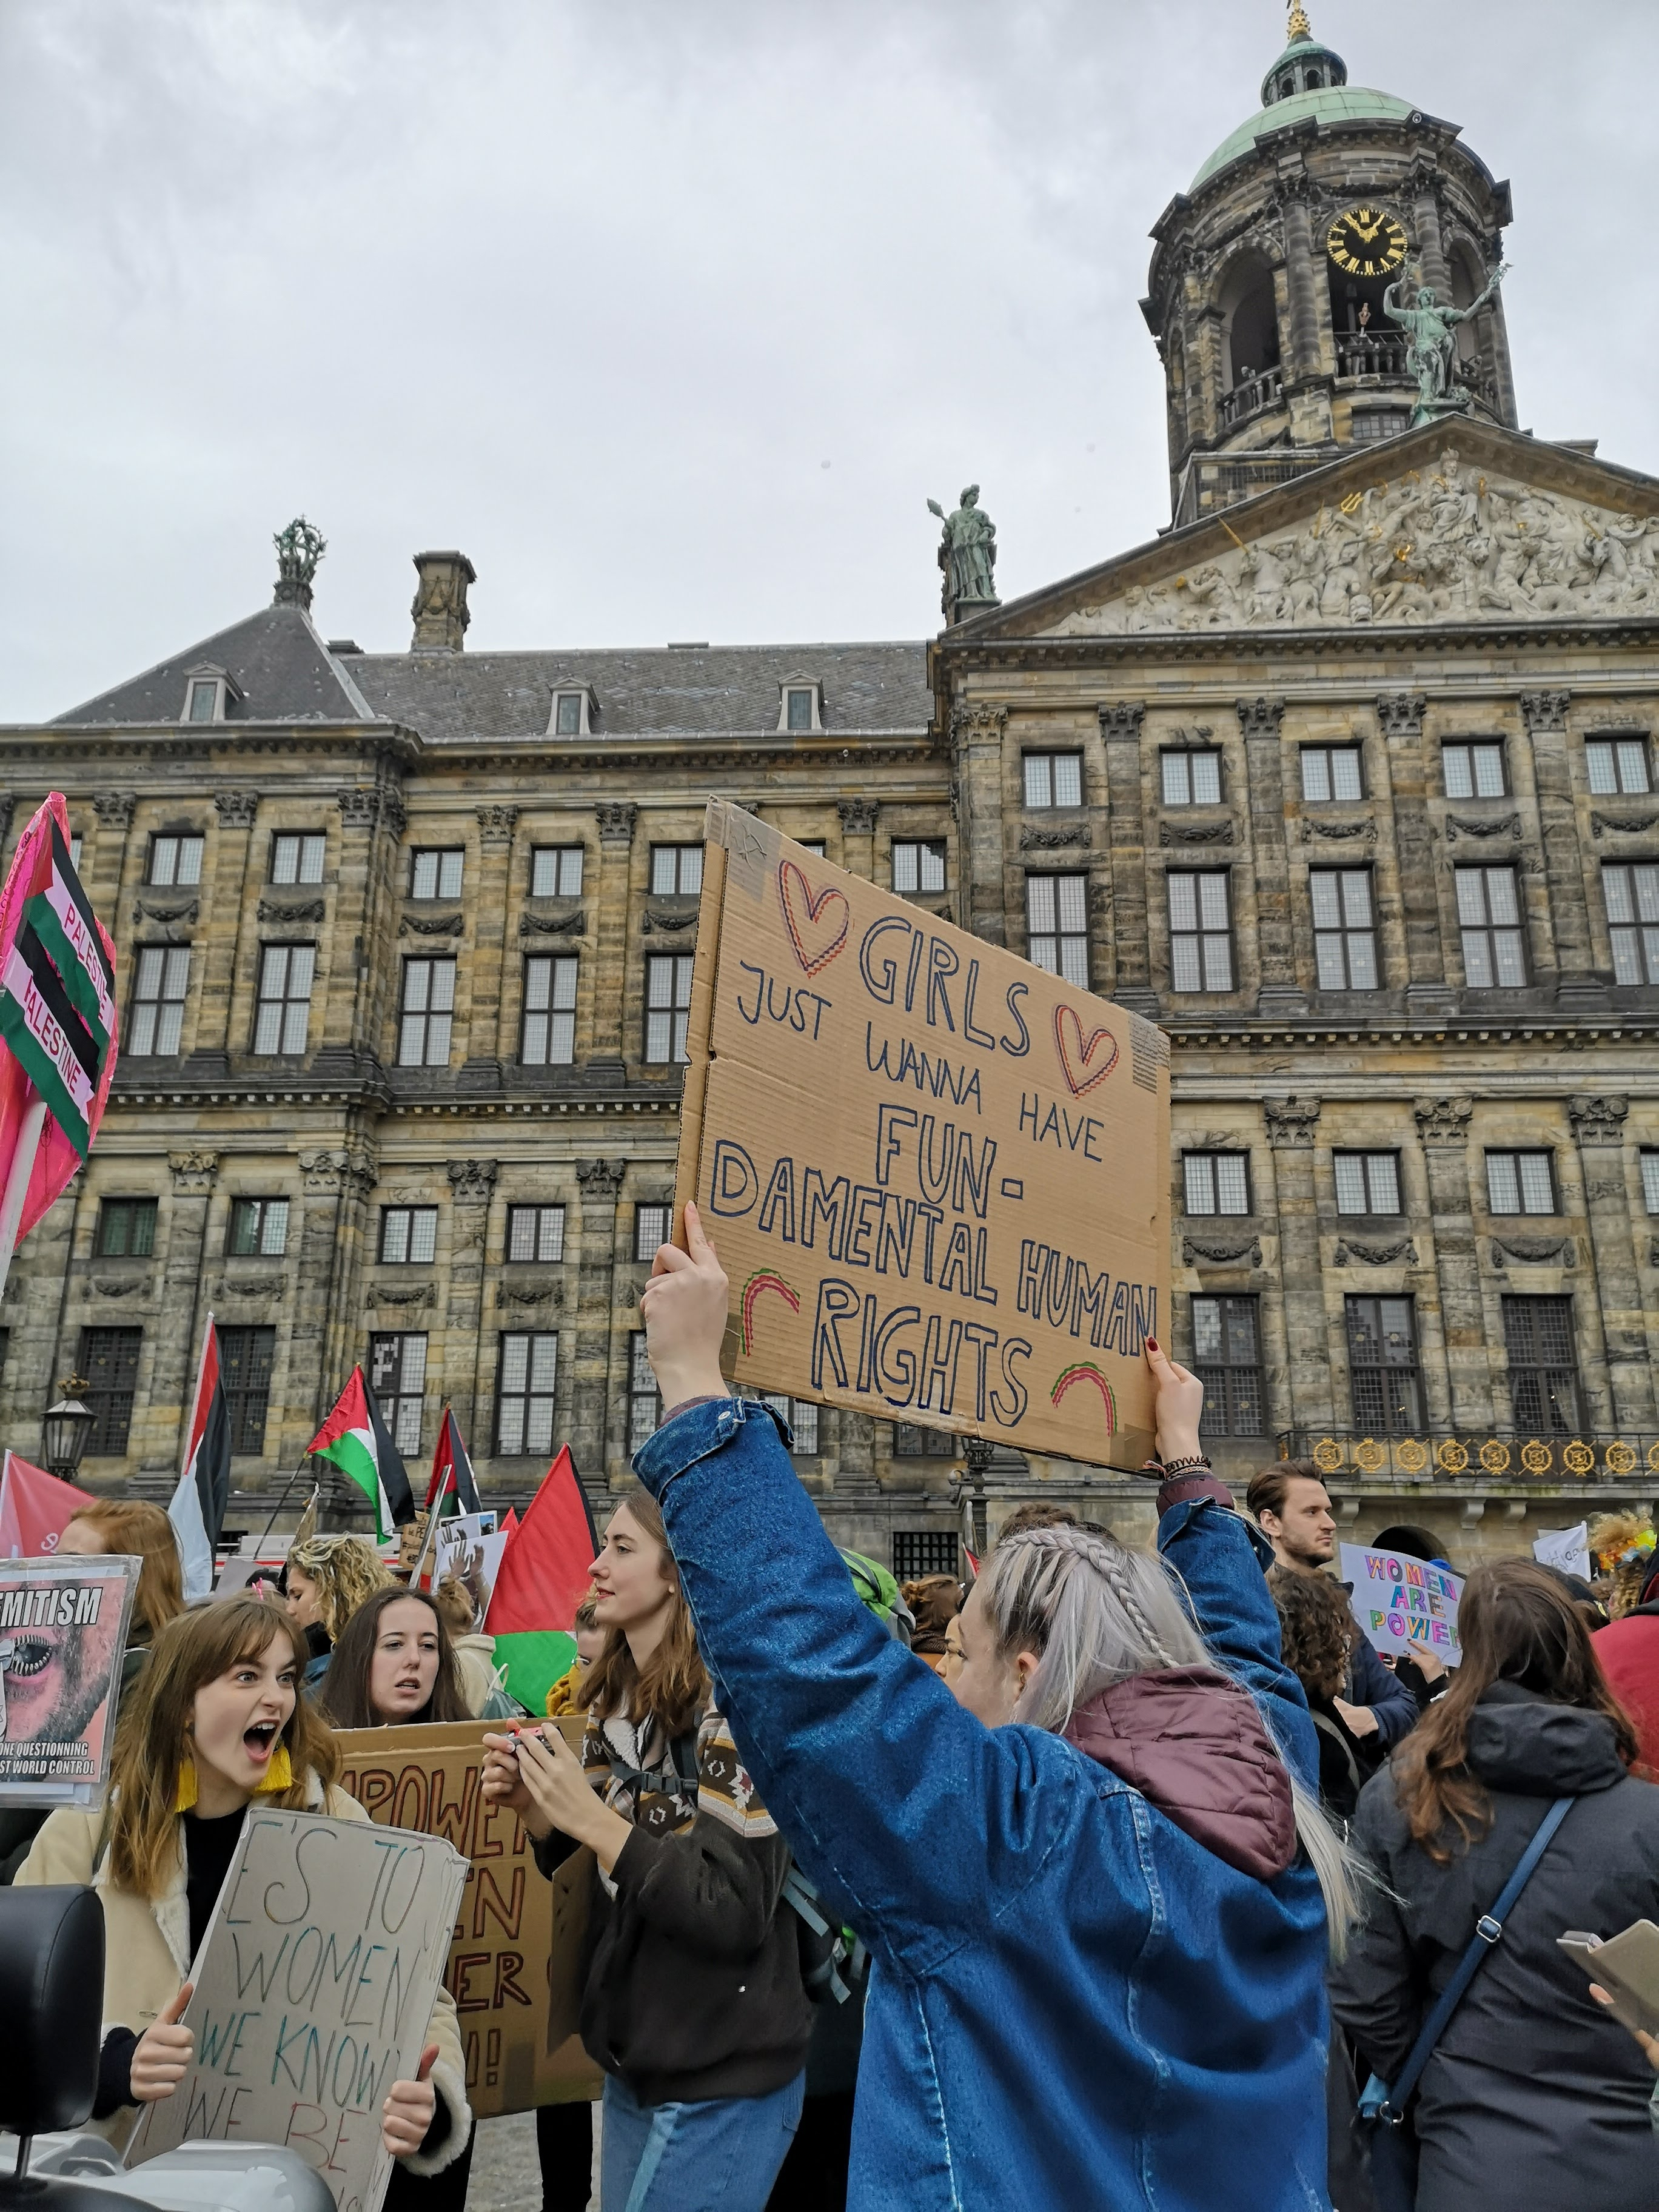 Photo from Amsterdam, Netherlands.